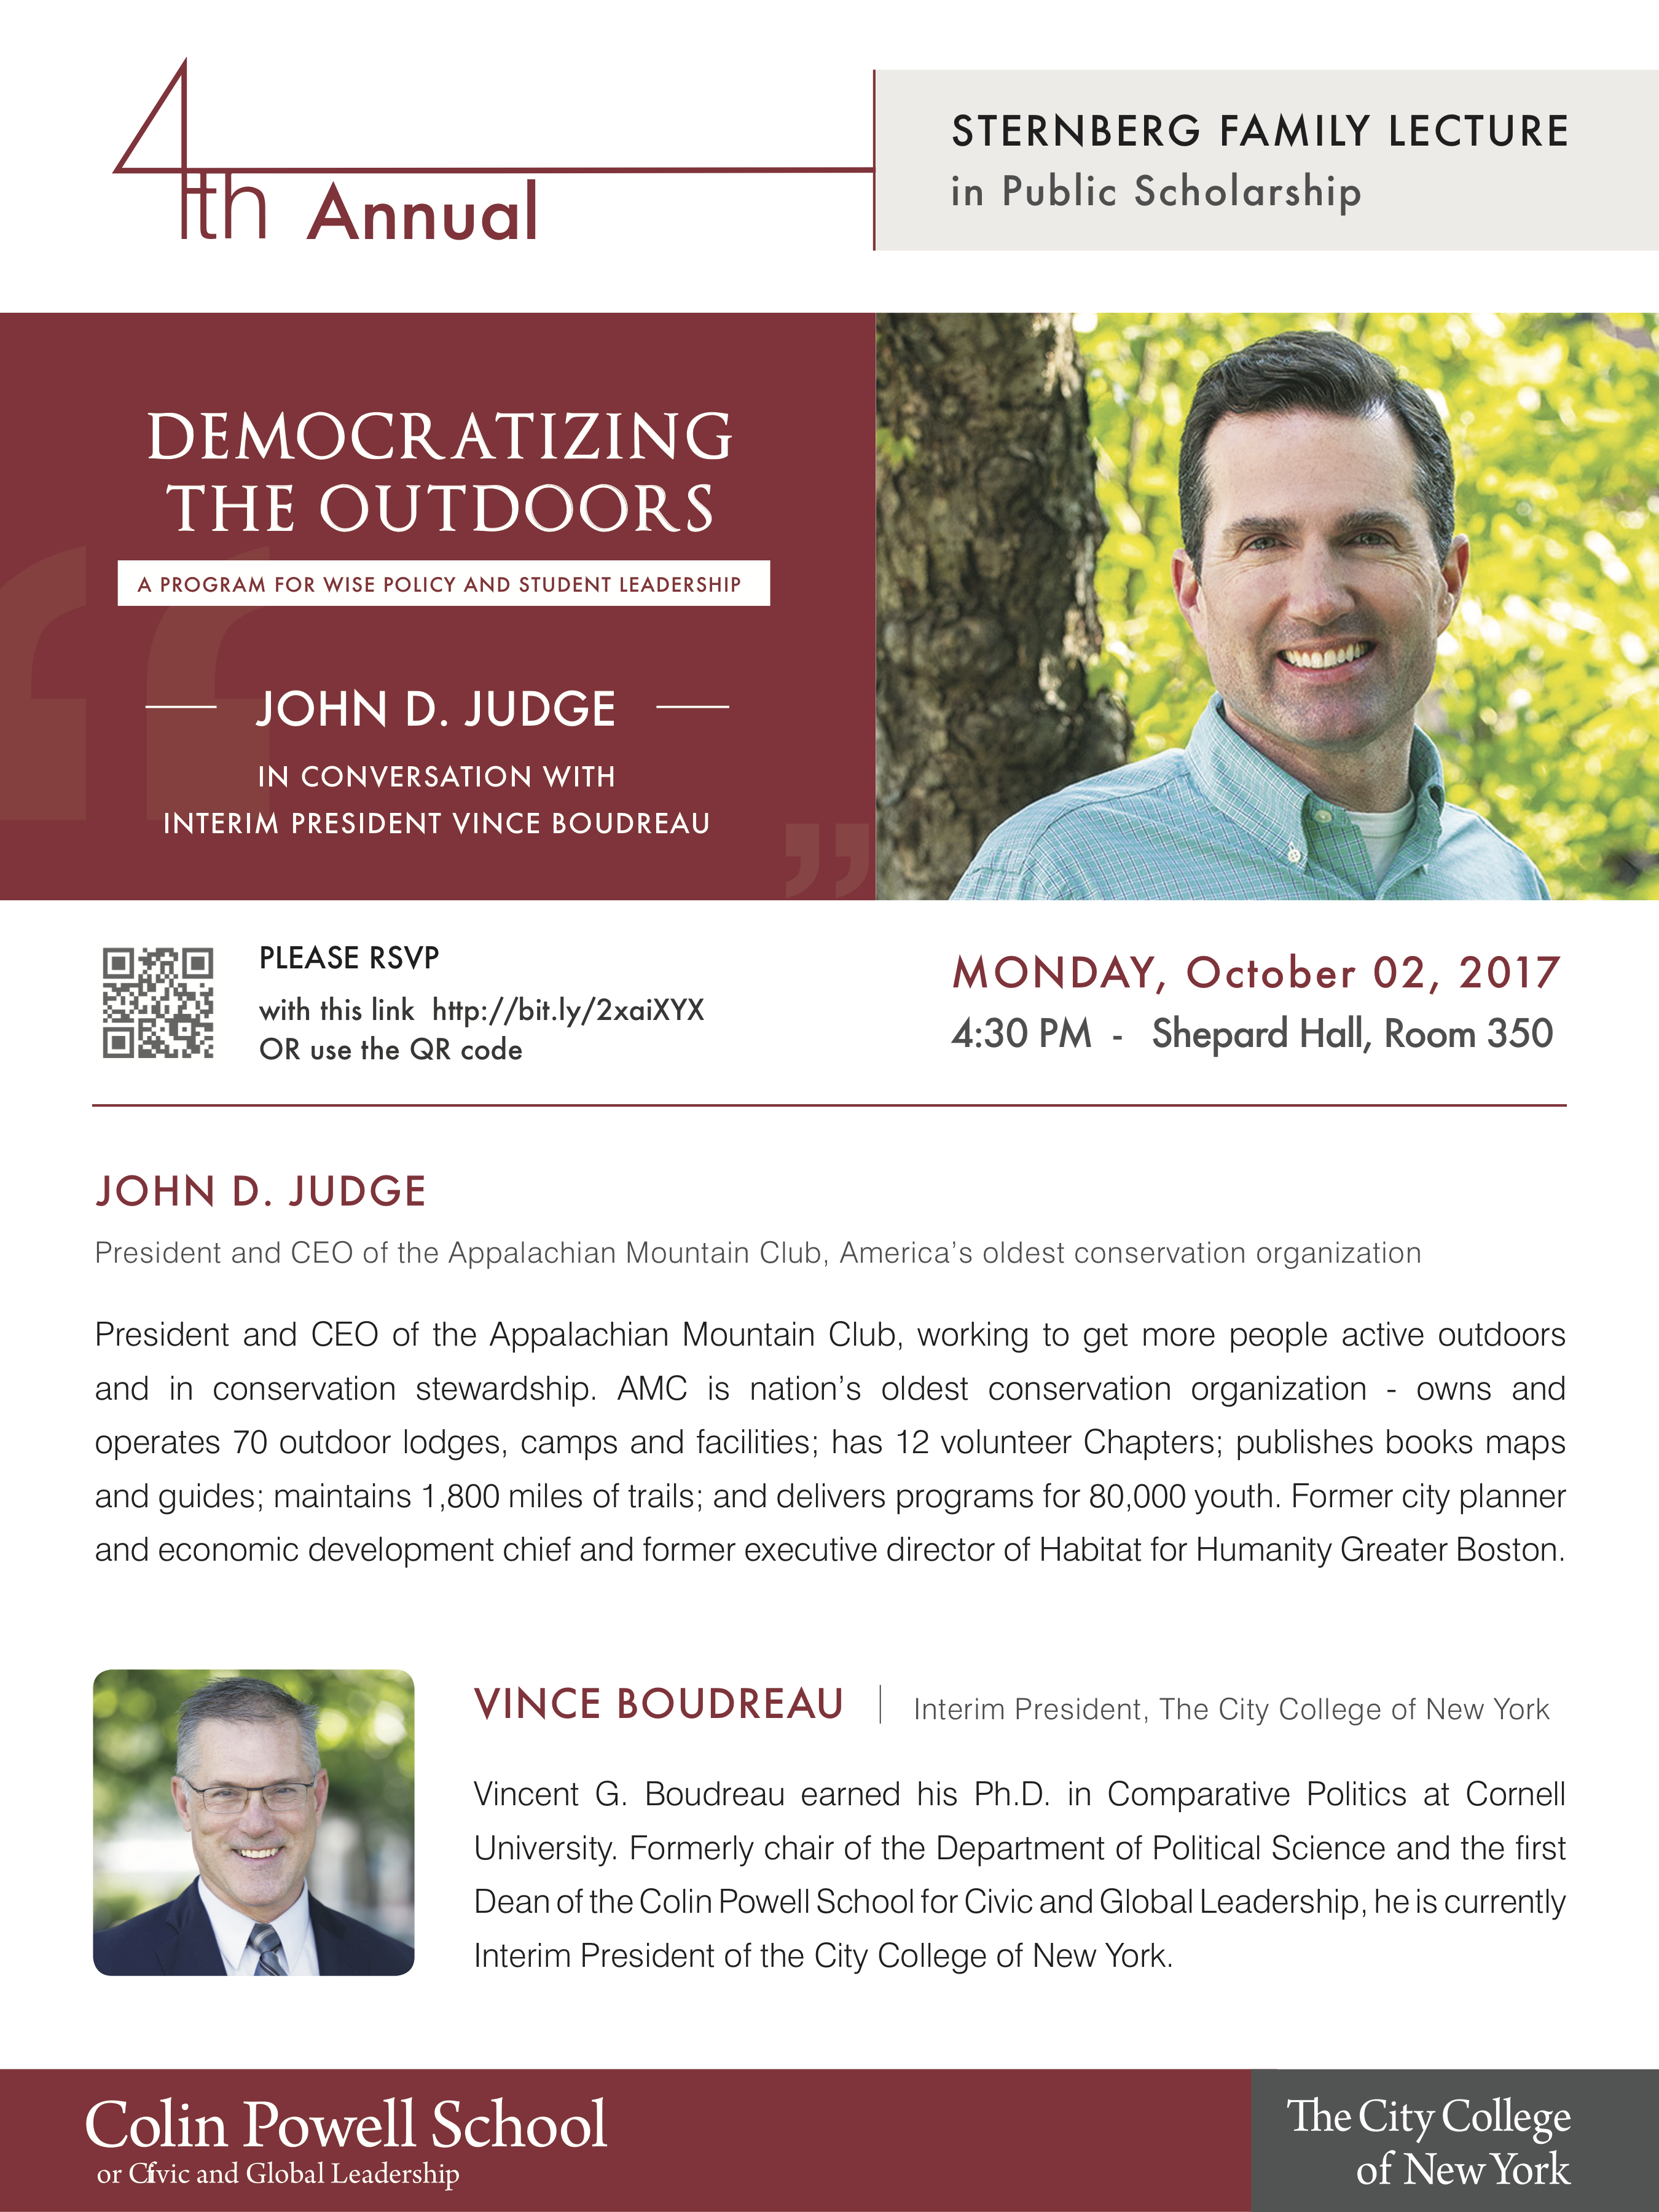 4th Annual Sternberg Lecture 2017 featuring John D. Judge